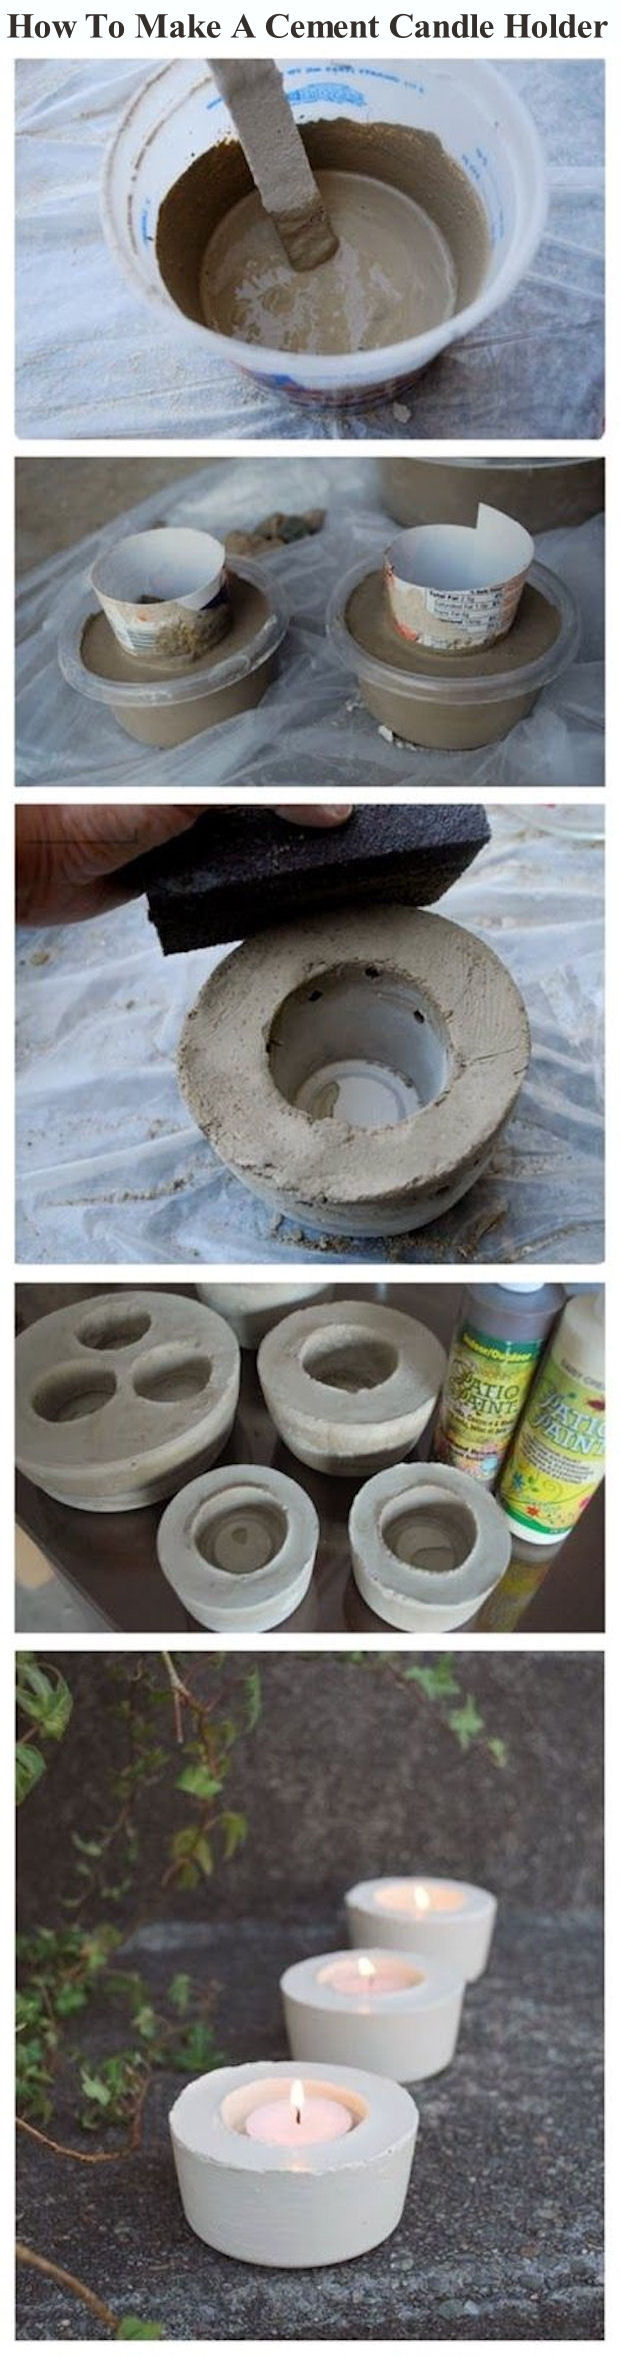 How To Make A Cement Candle Holder Pictures, Photos, and ...